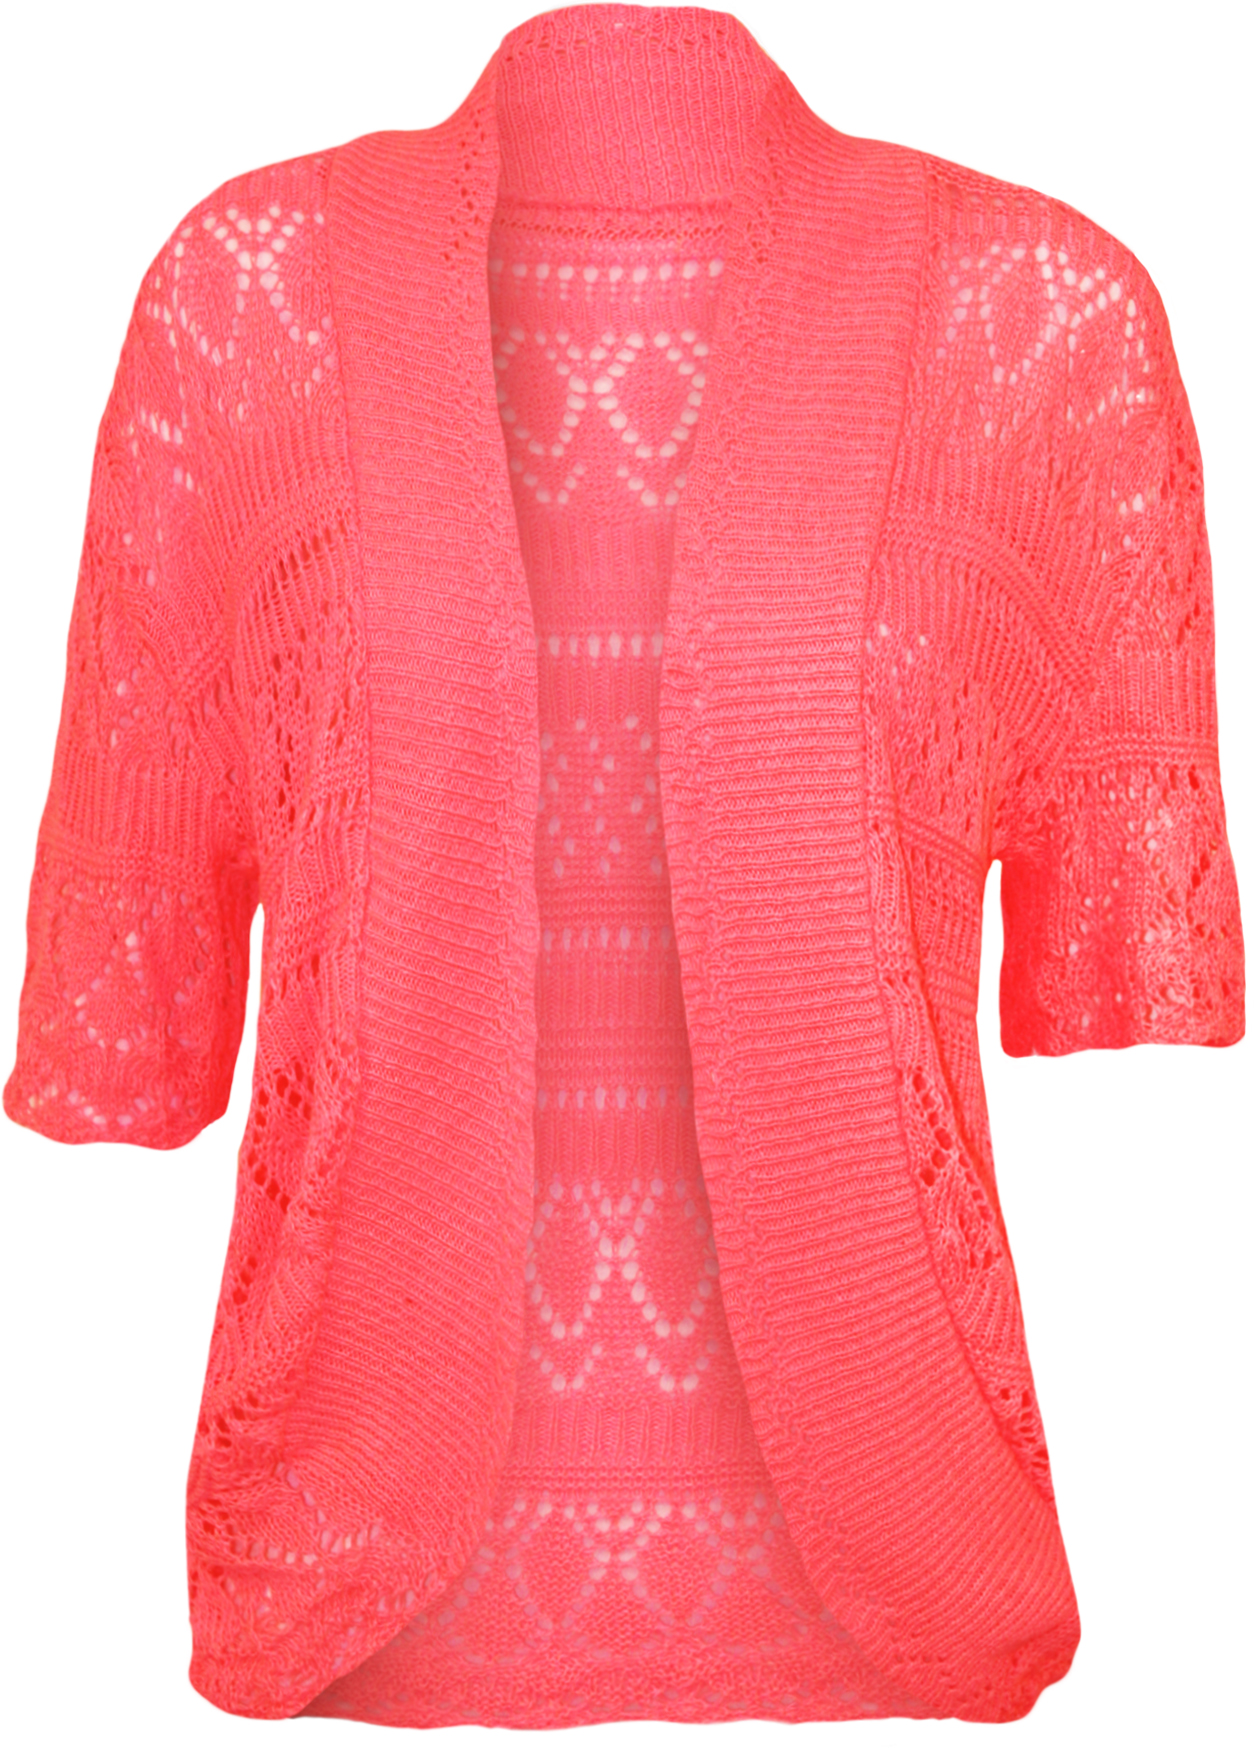 New Womens Plus Size Crochet Knitted Short Sleeve Ladies ...